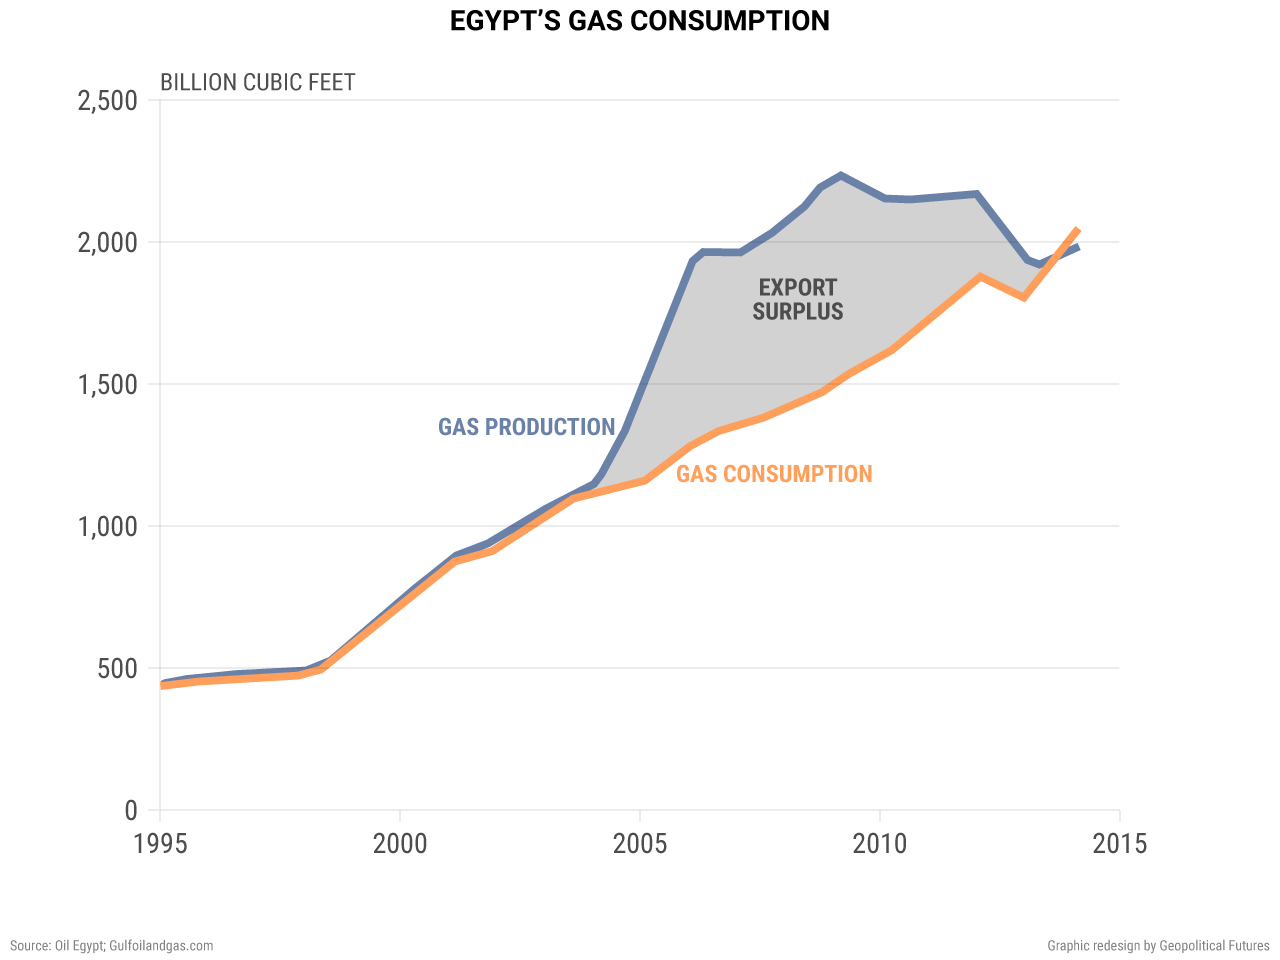 Egypt's Gas Consumption